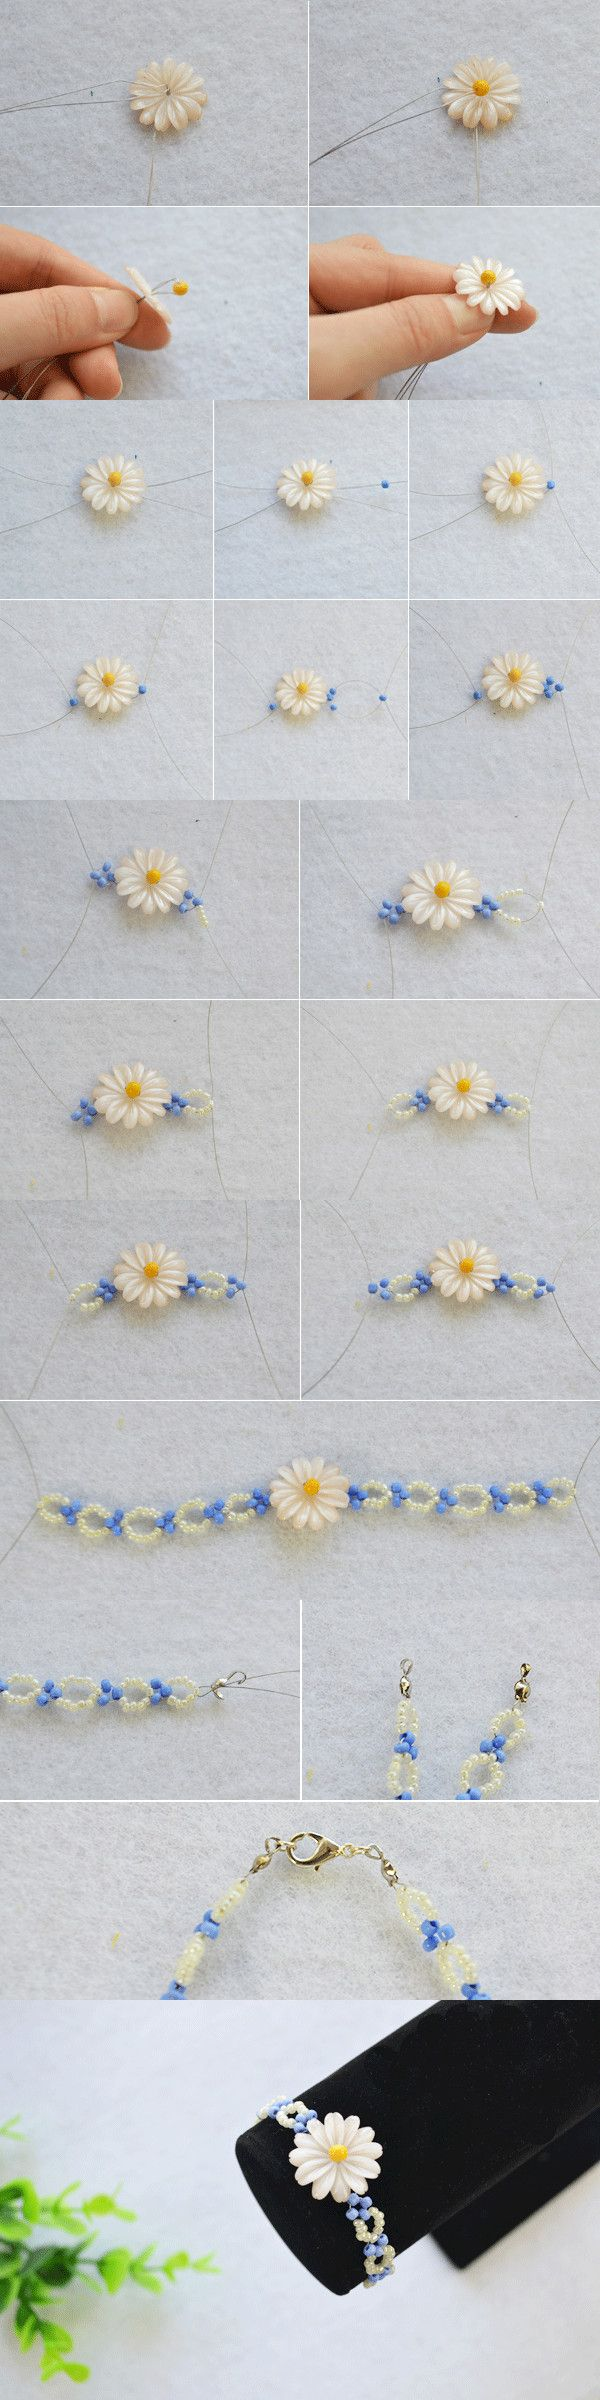 Tutorial On How To Make A Daisy Beaded Flower Bracelet Pattern In 15  Minutes From Lc